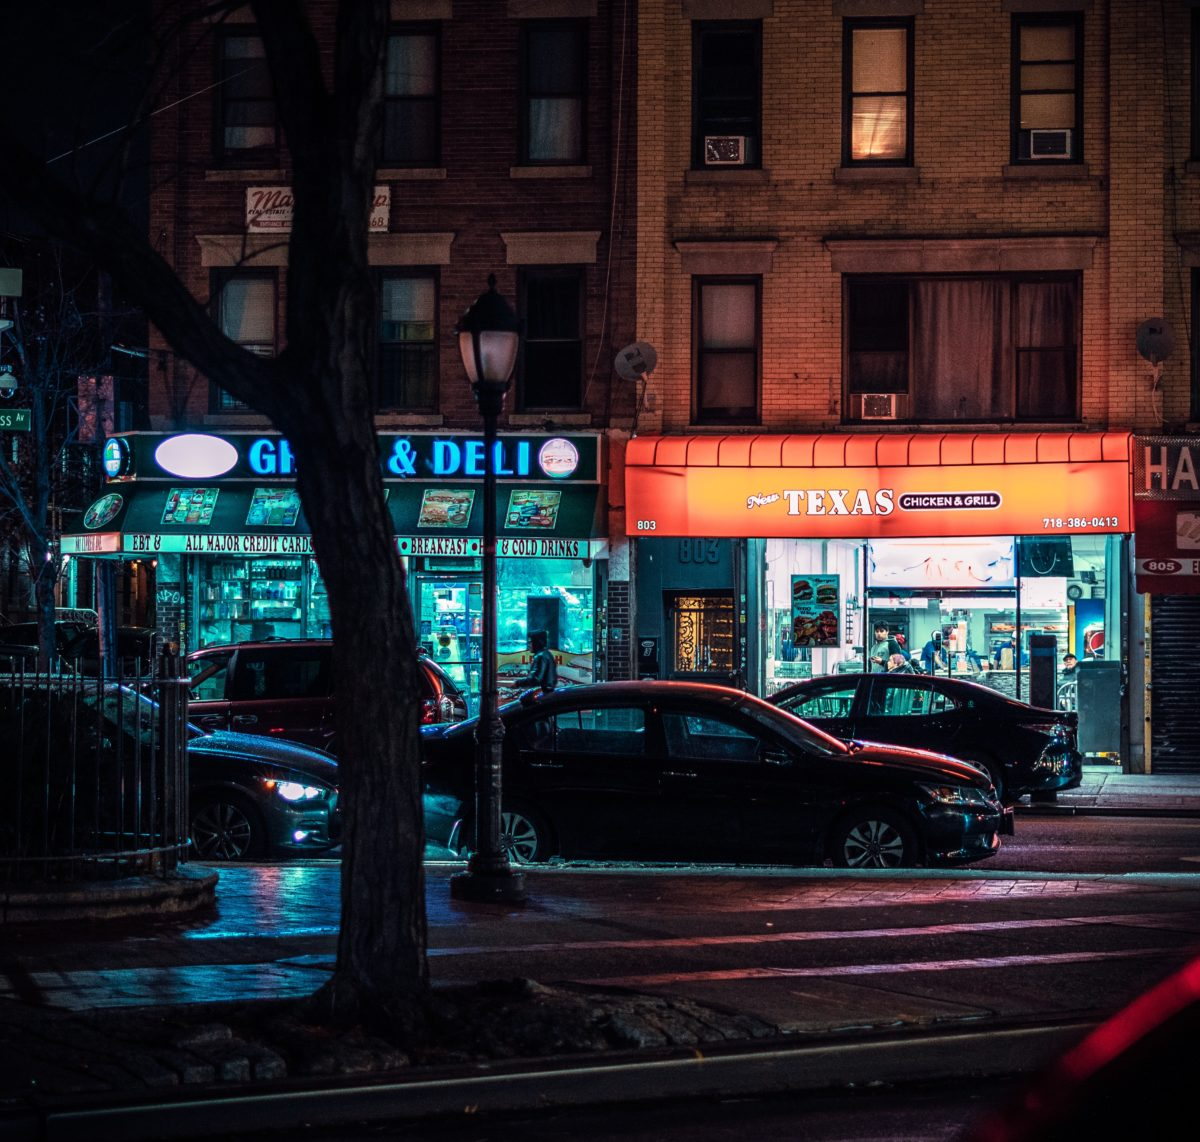 two store fronts lit by their signs at night